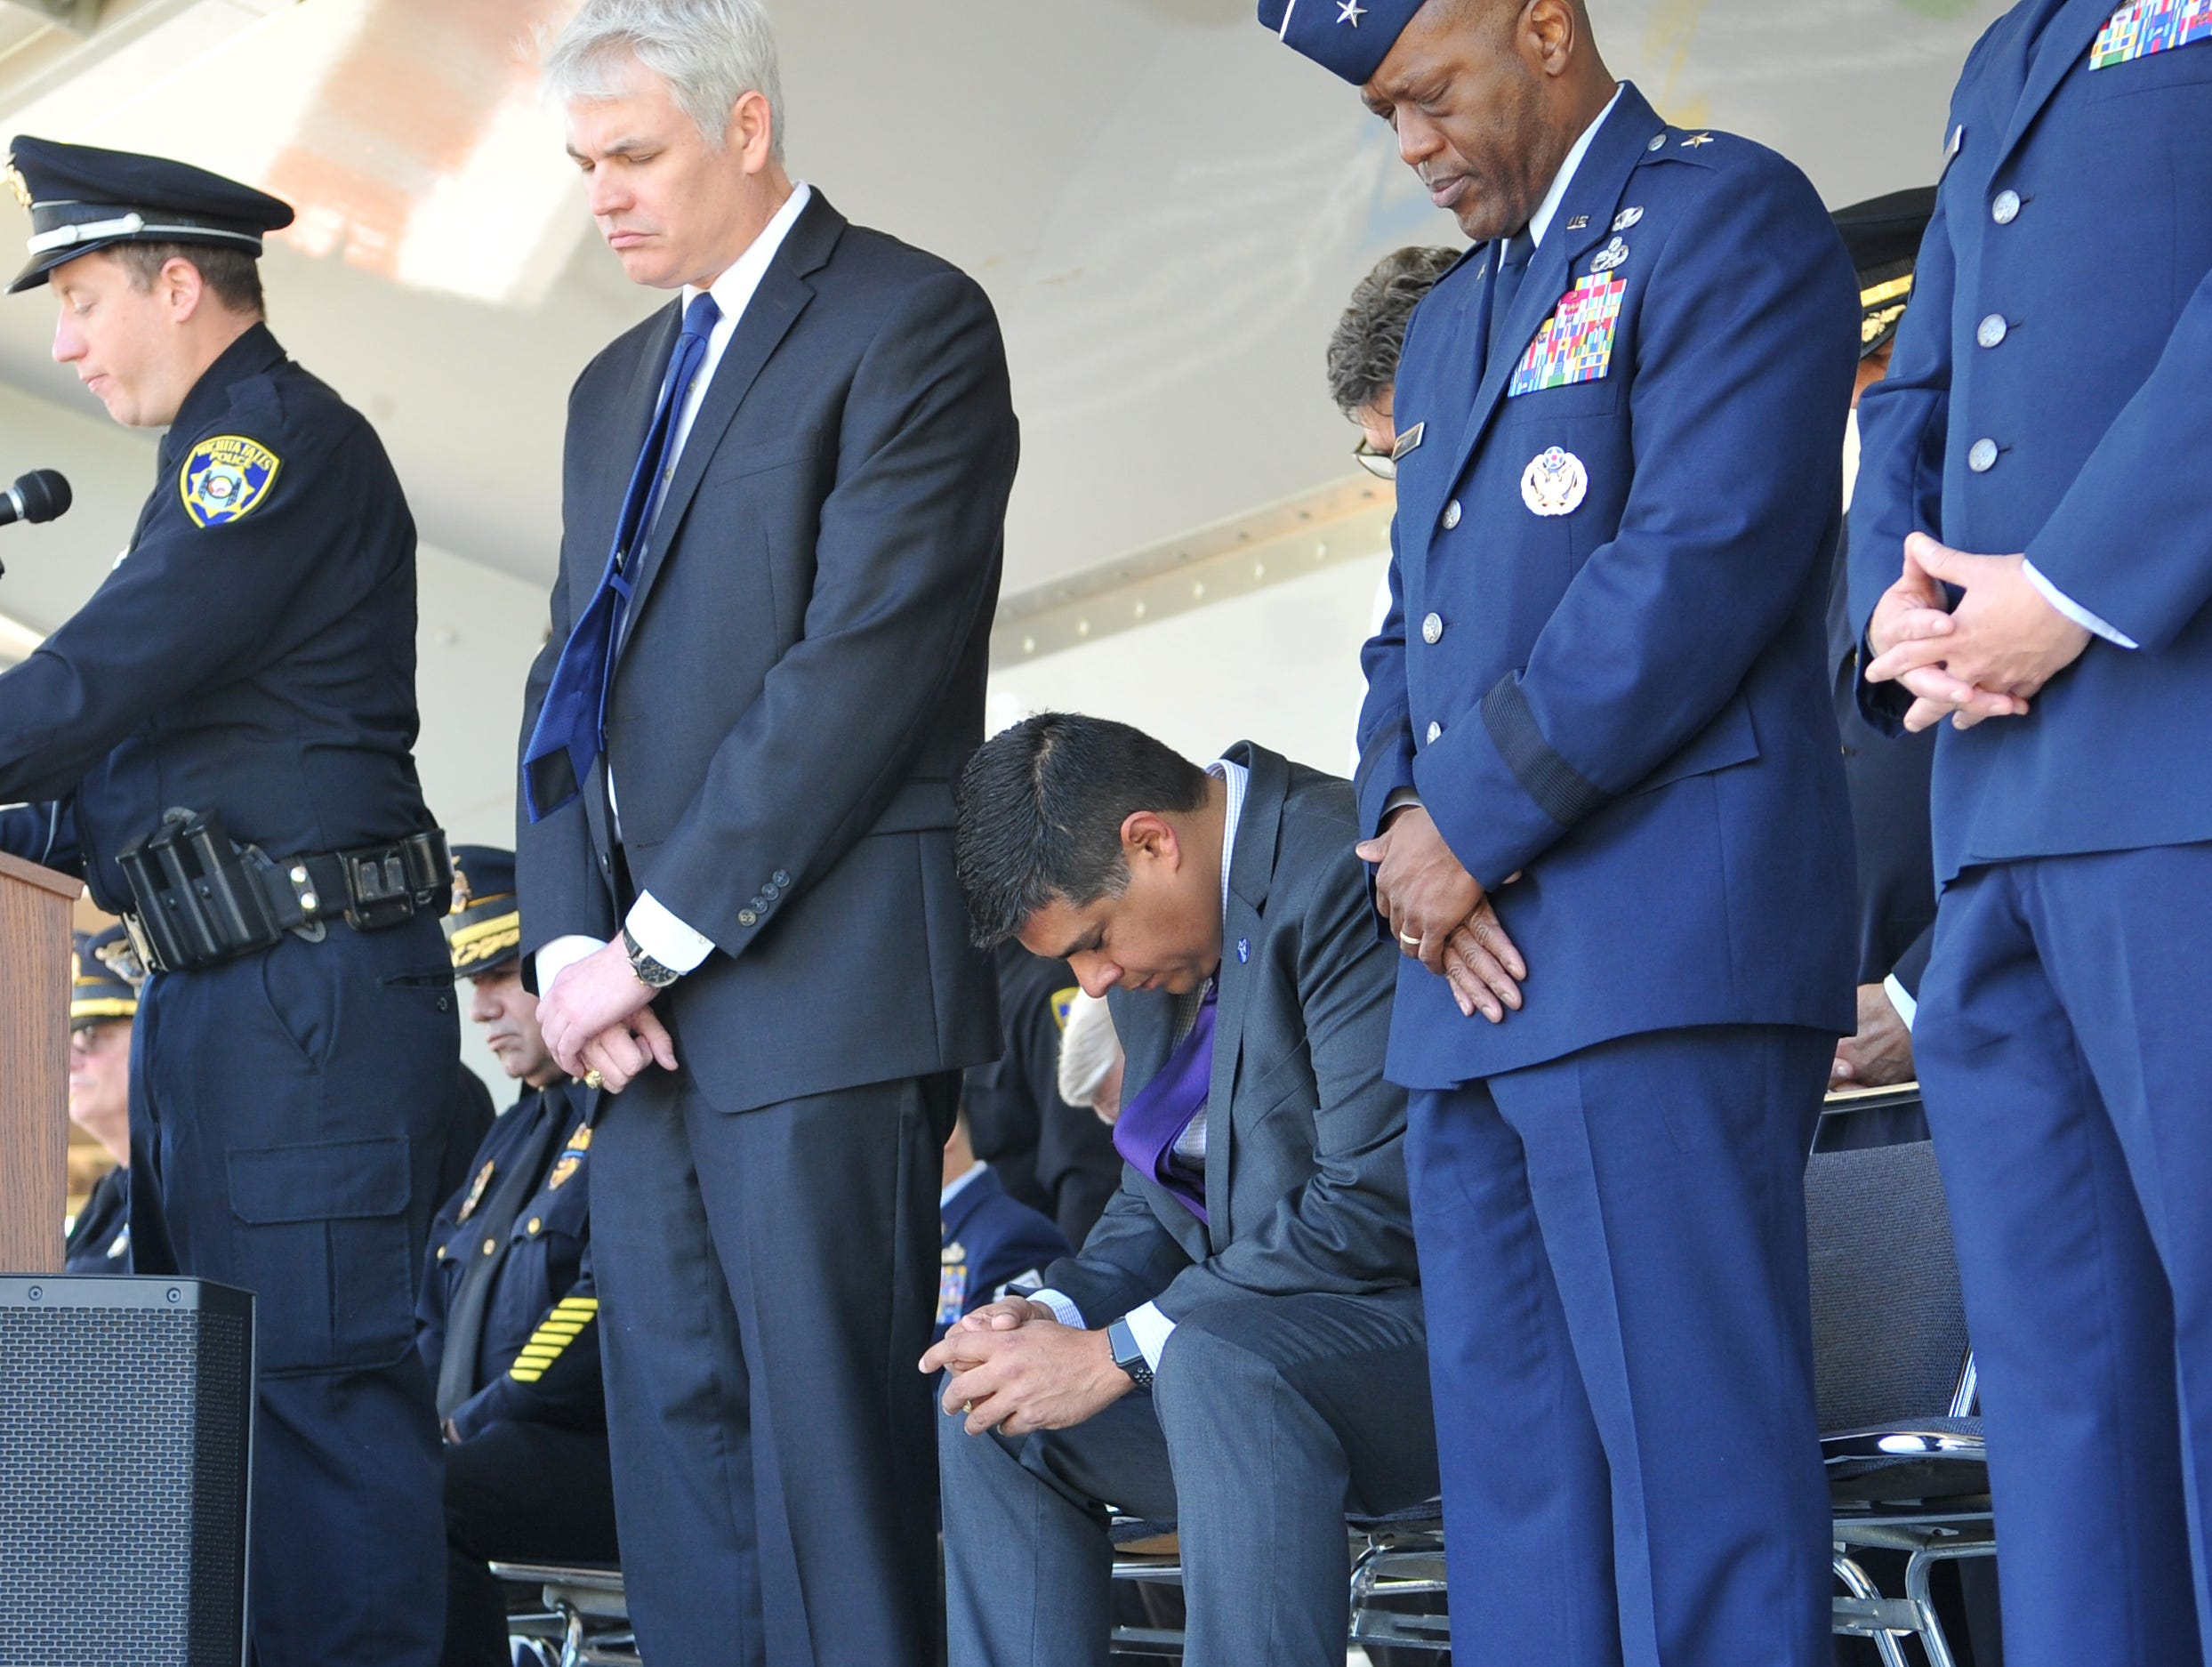 Dignitaries from Sheppard Airforce Base, Wichita Falls, and Wichita County paid their respect during the Tribute to the Fallen ceremony held Monday morning during the Wichita Falls police department's annual Police Memorial Service.